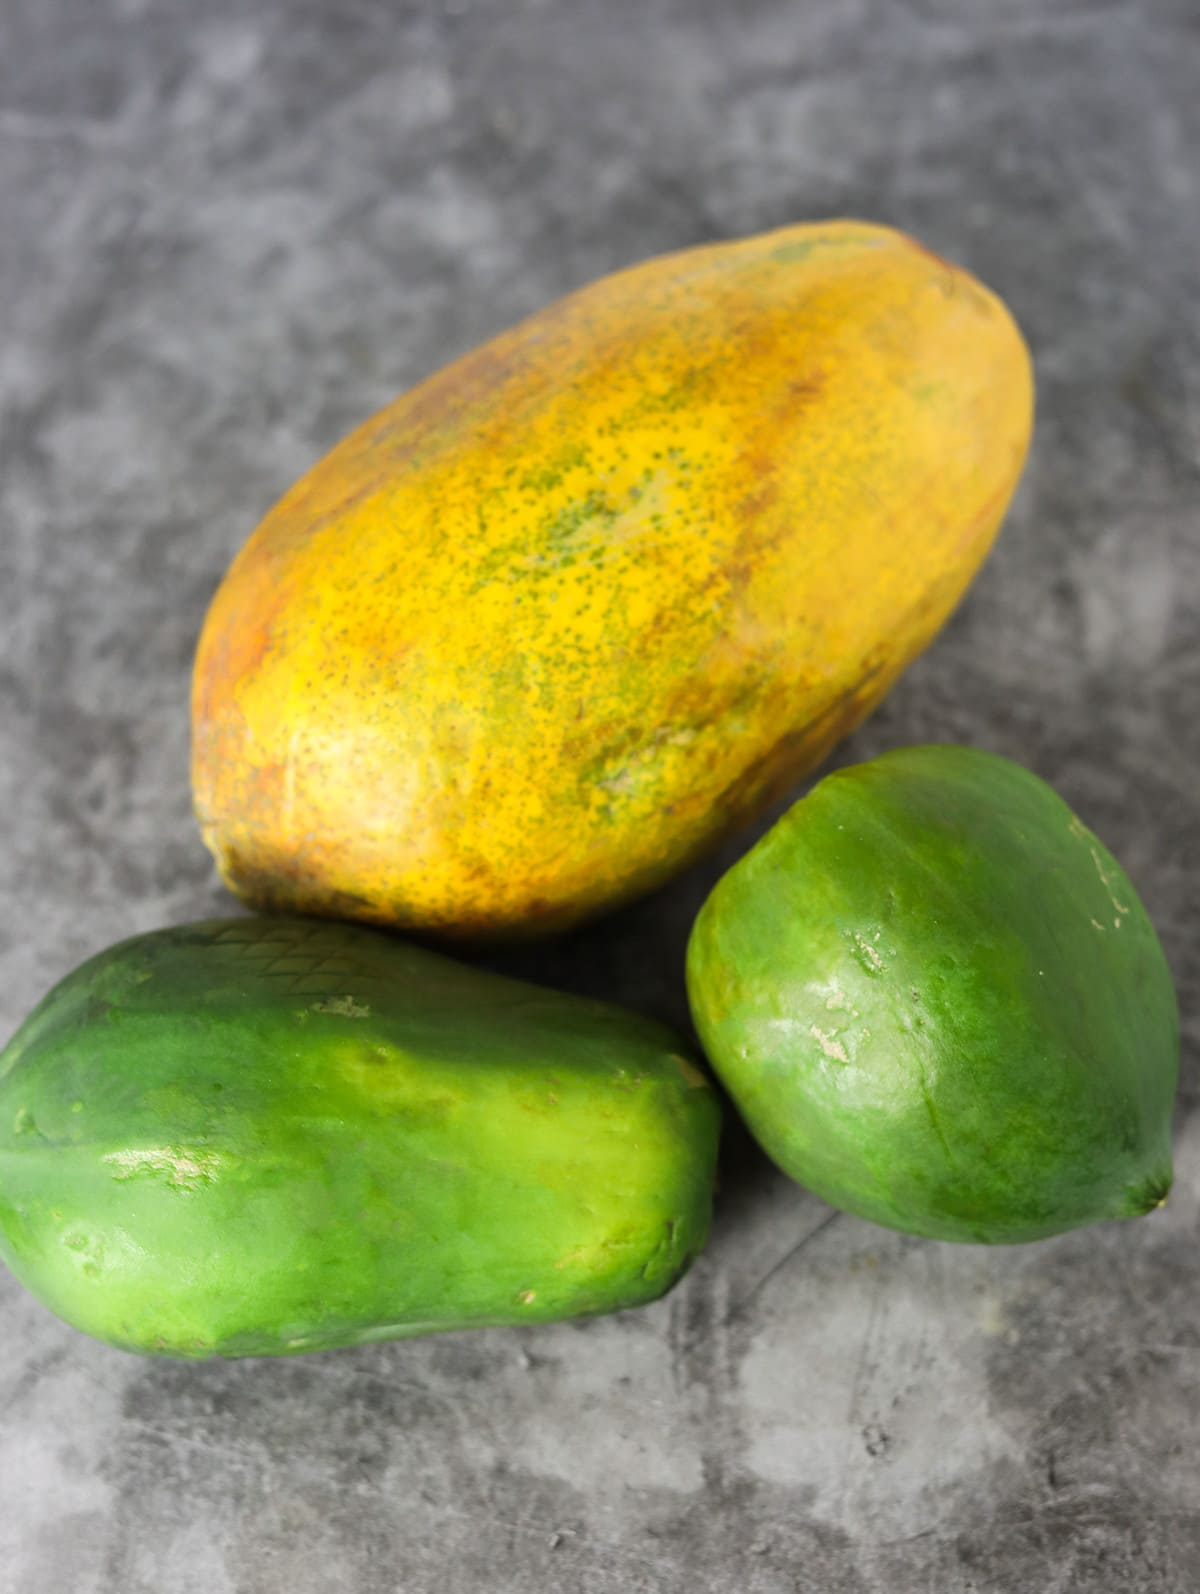 3 papayas, one ripe and 2 green ones